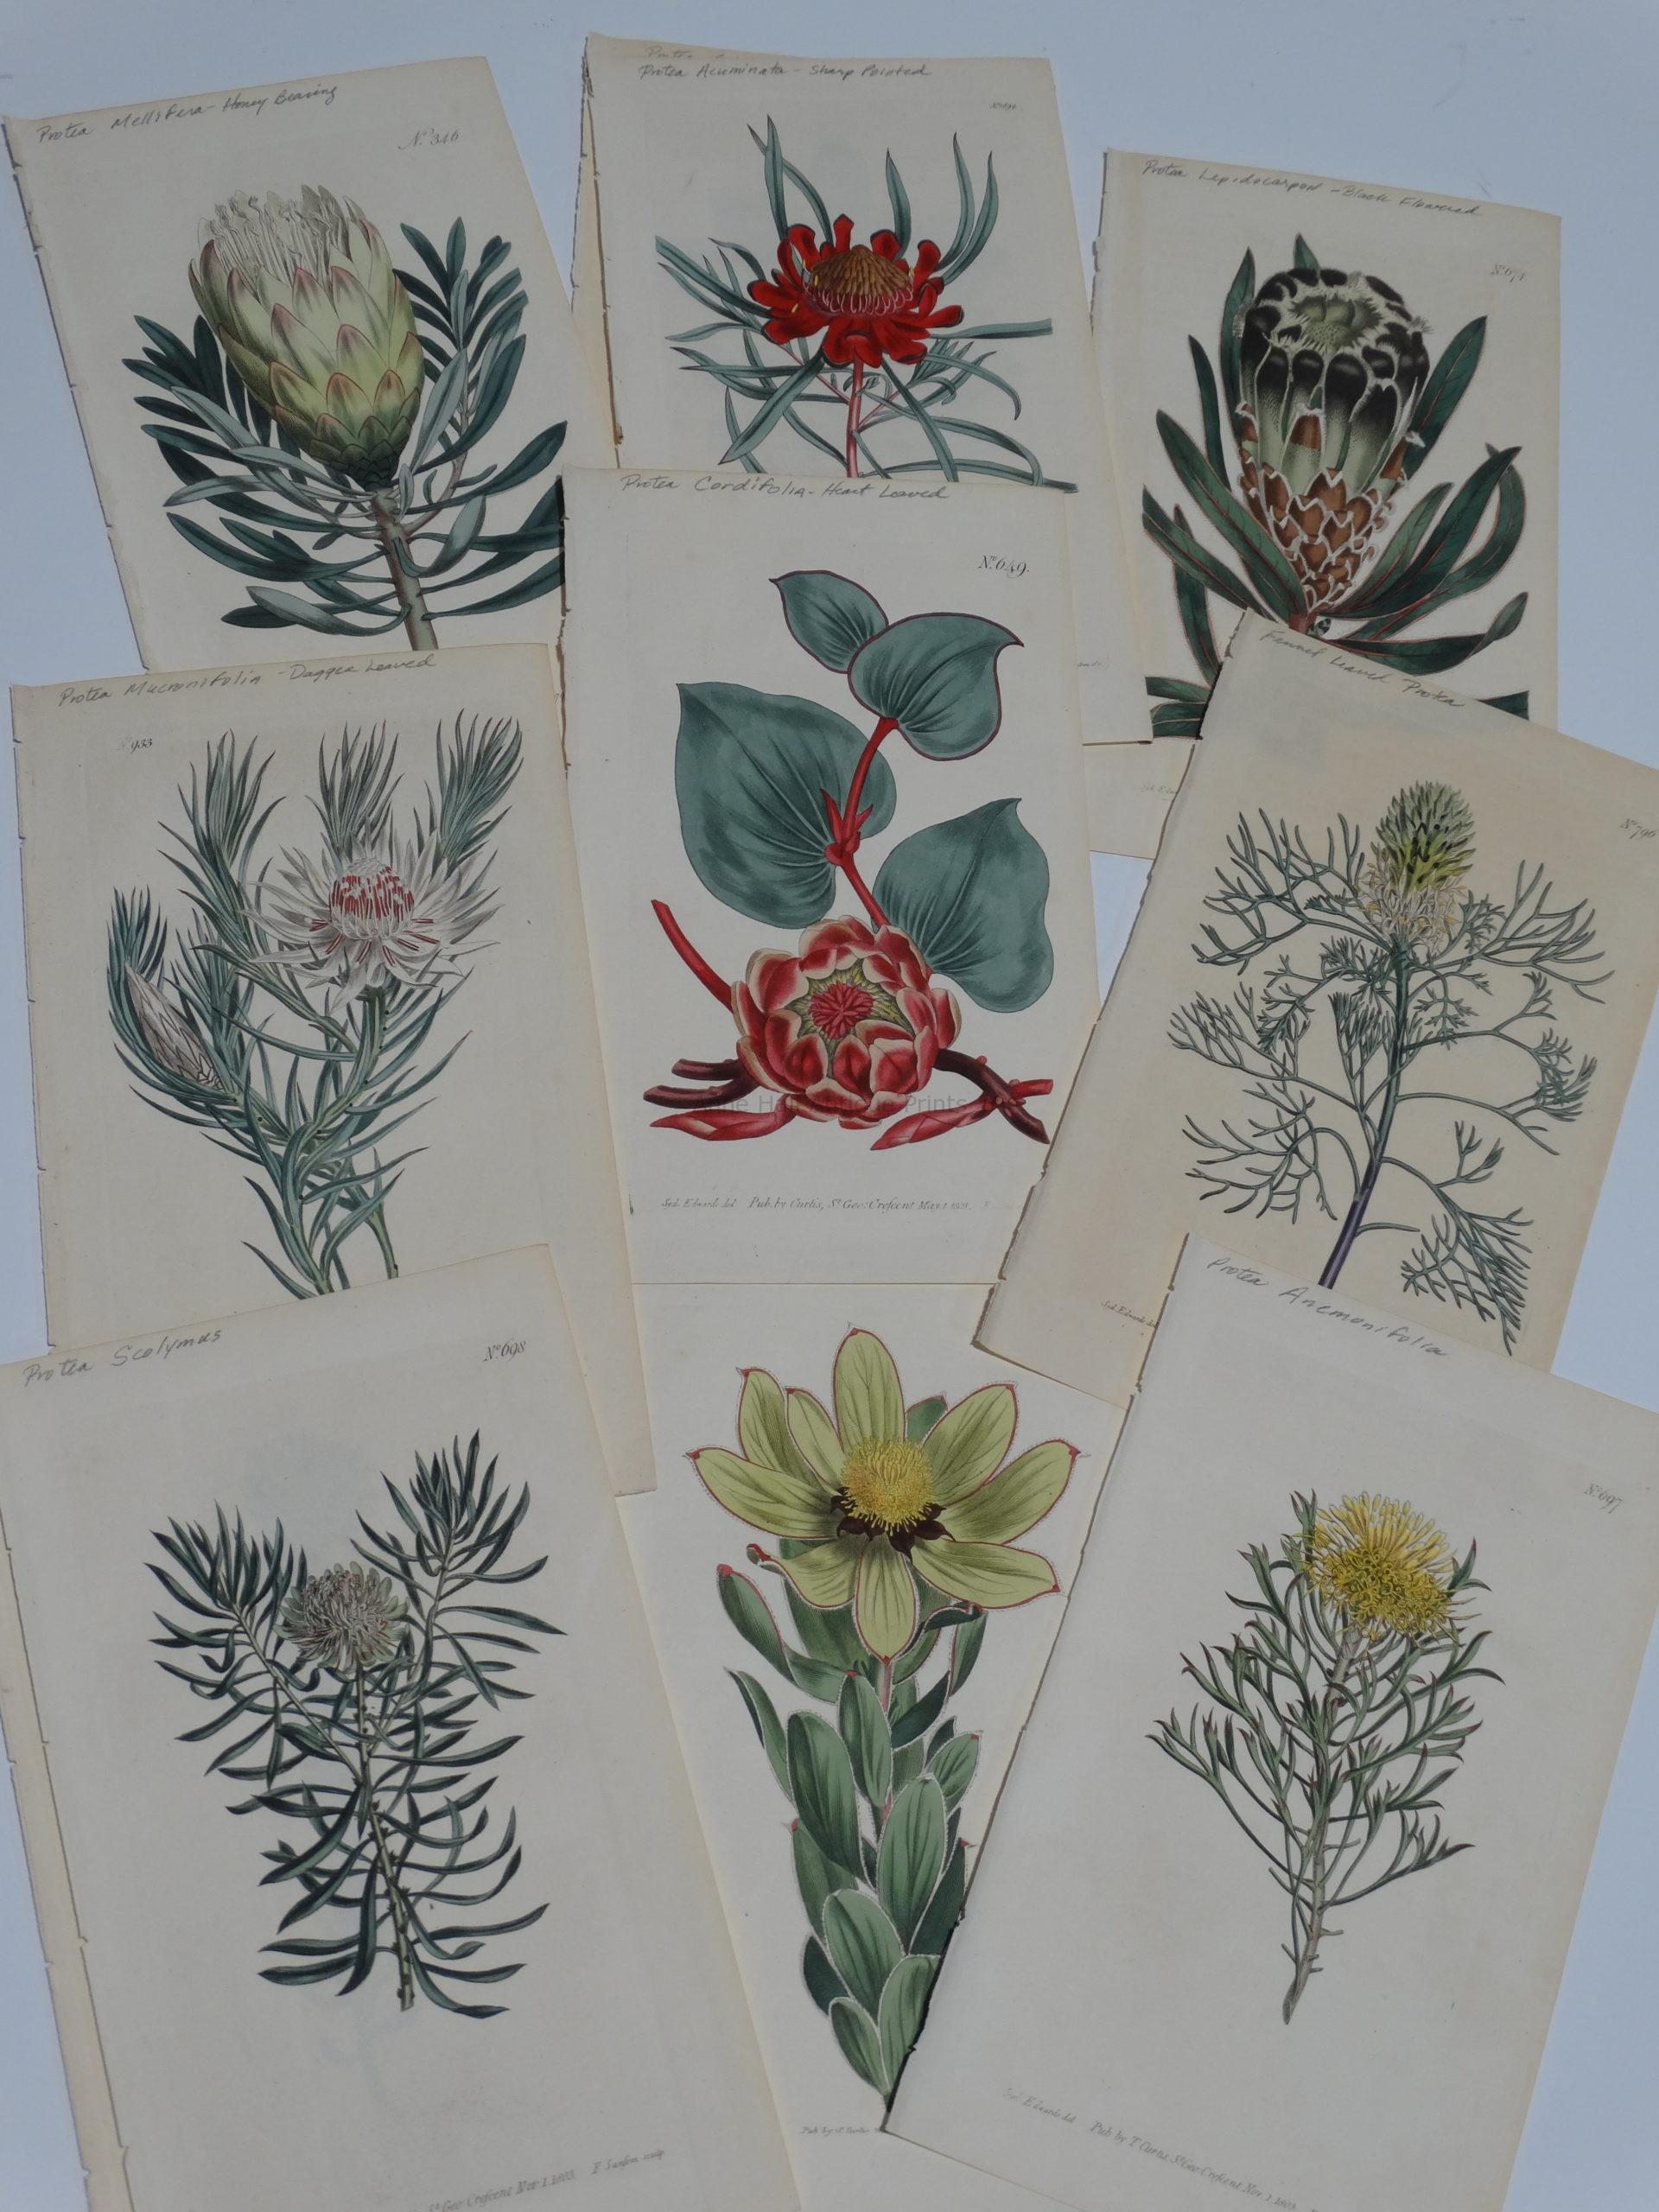 Find old artwork of artichoke protea from centuries ago.